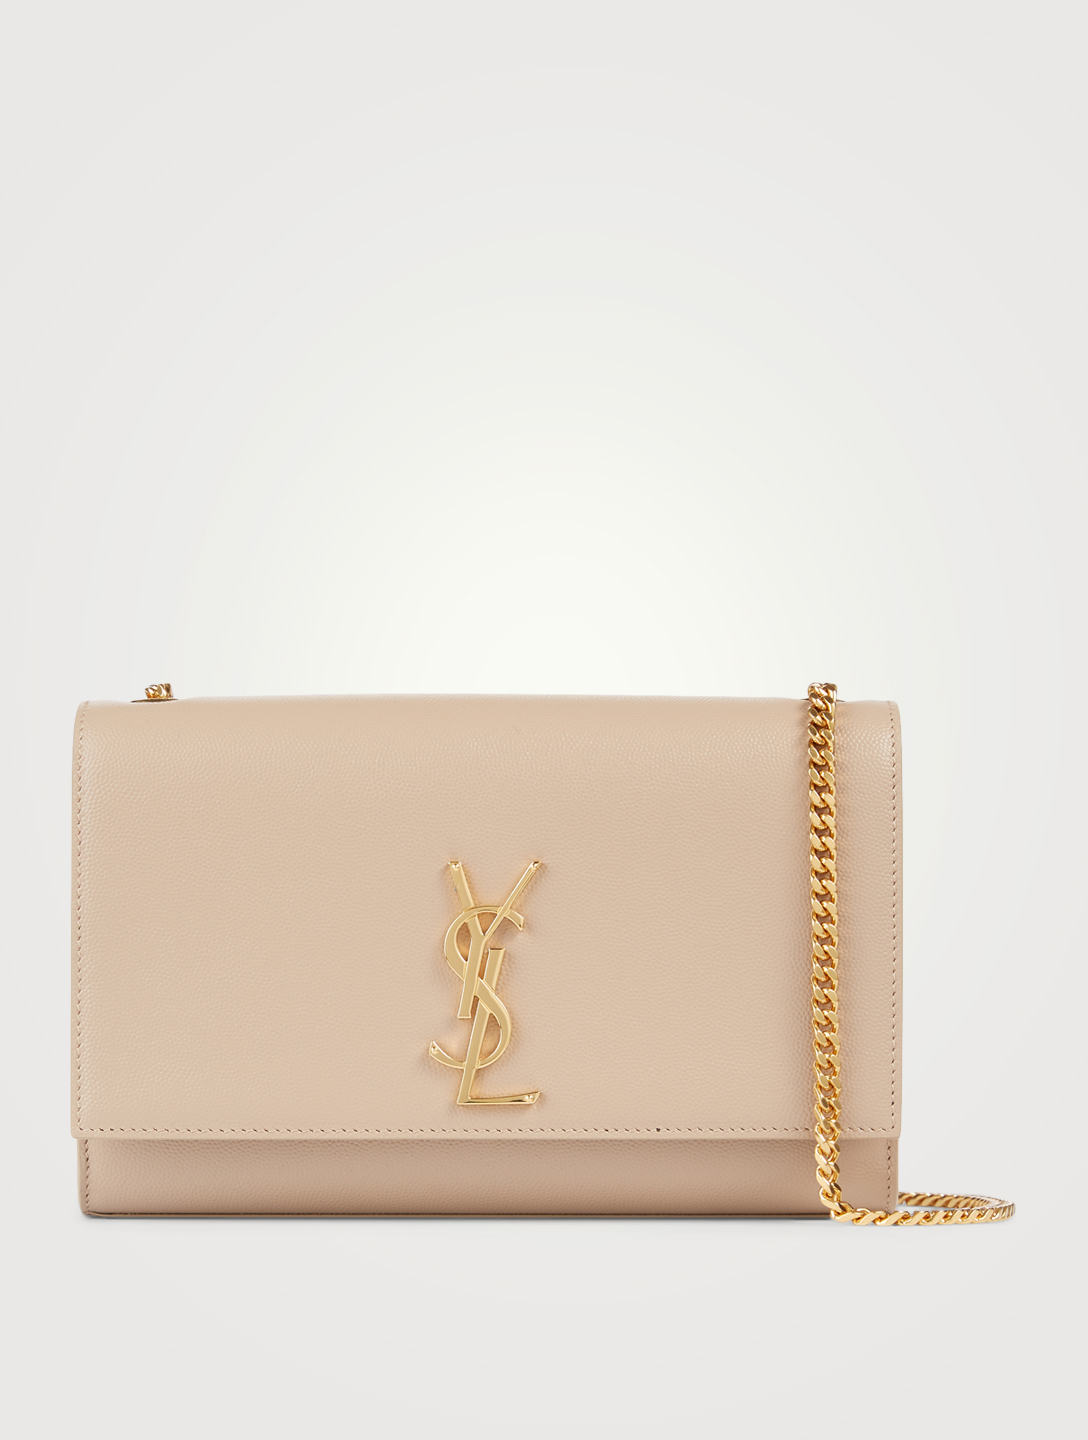 SAINT LAURENT Medium Kate YSL Monogram Leather Chain Bag Women's Beige